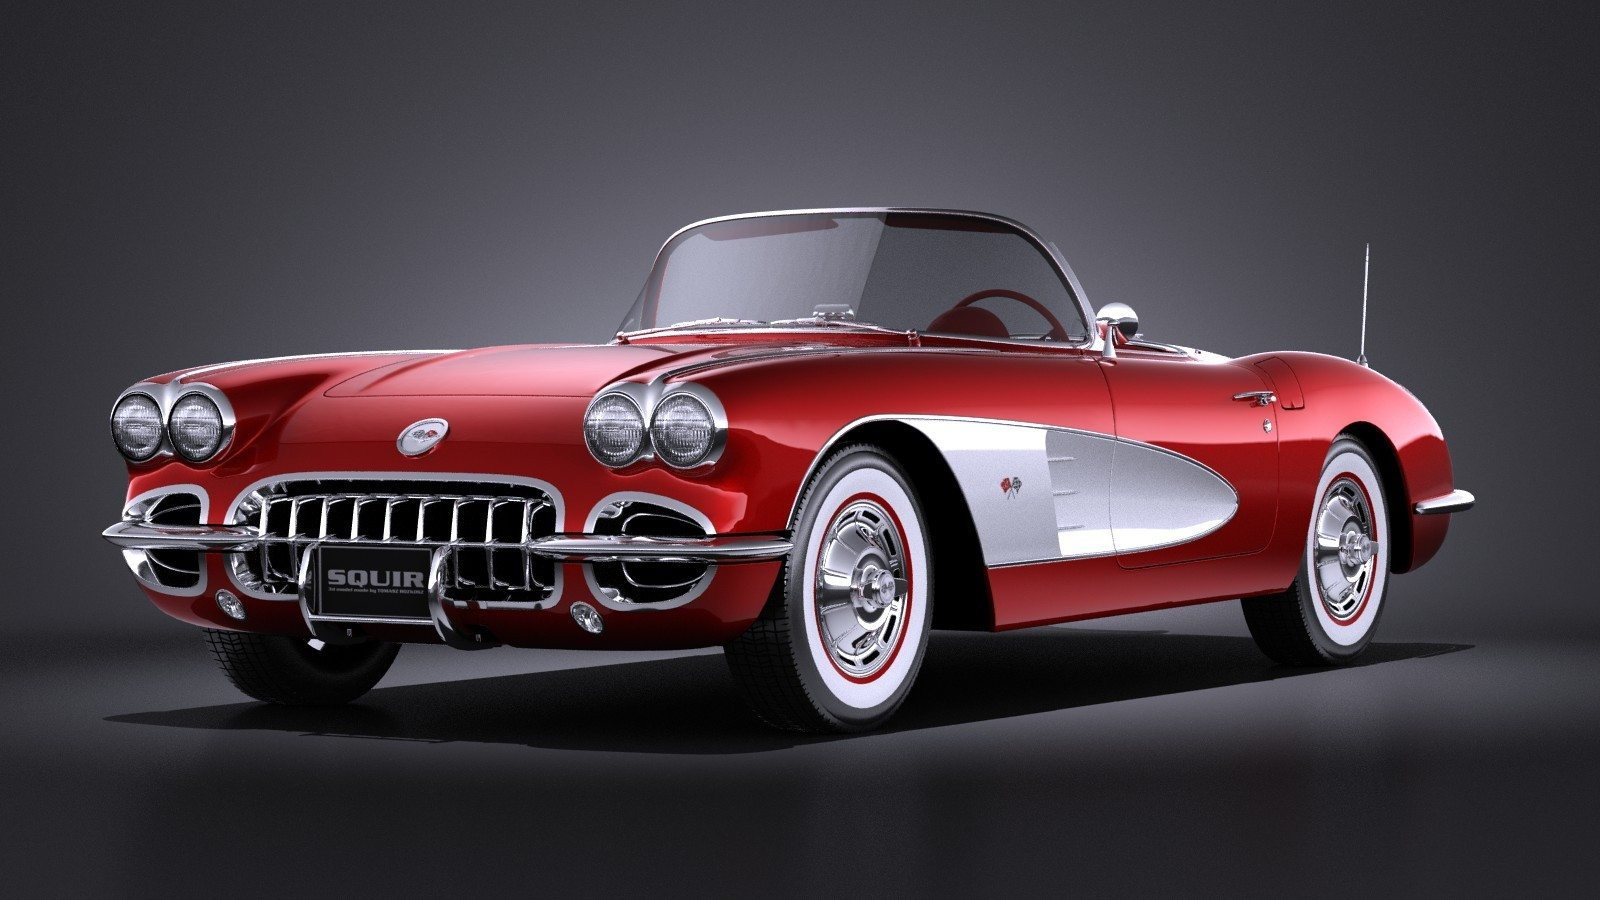 Why Corvettes are the Most Legendary Cars of All Time